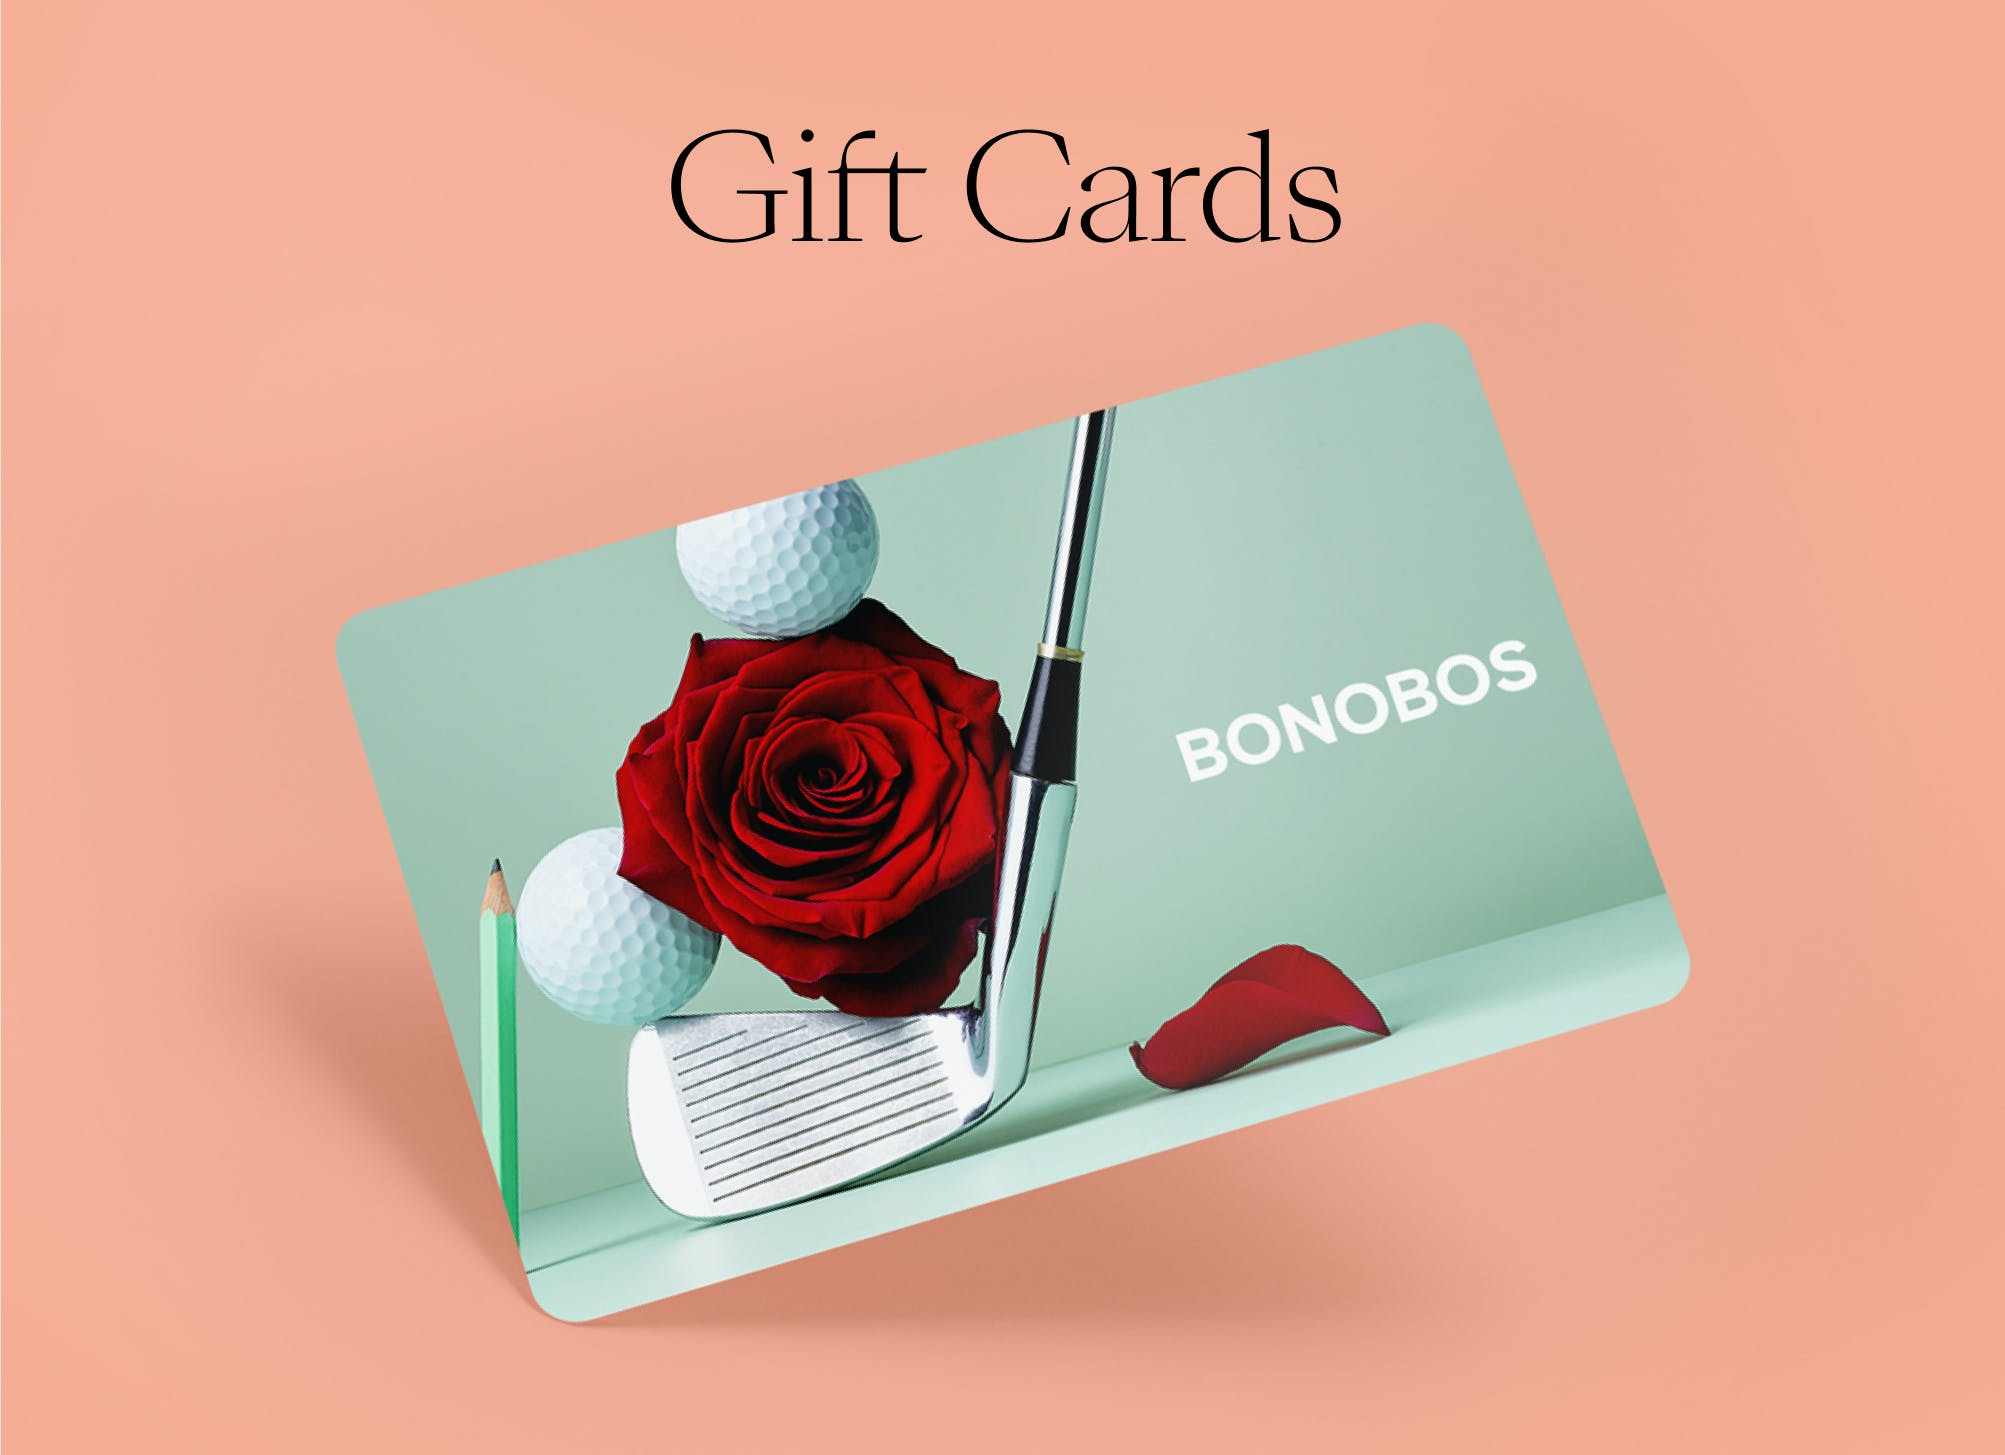 Image of a gift card with rose and golf club